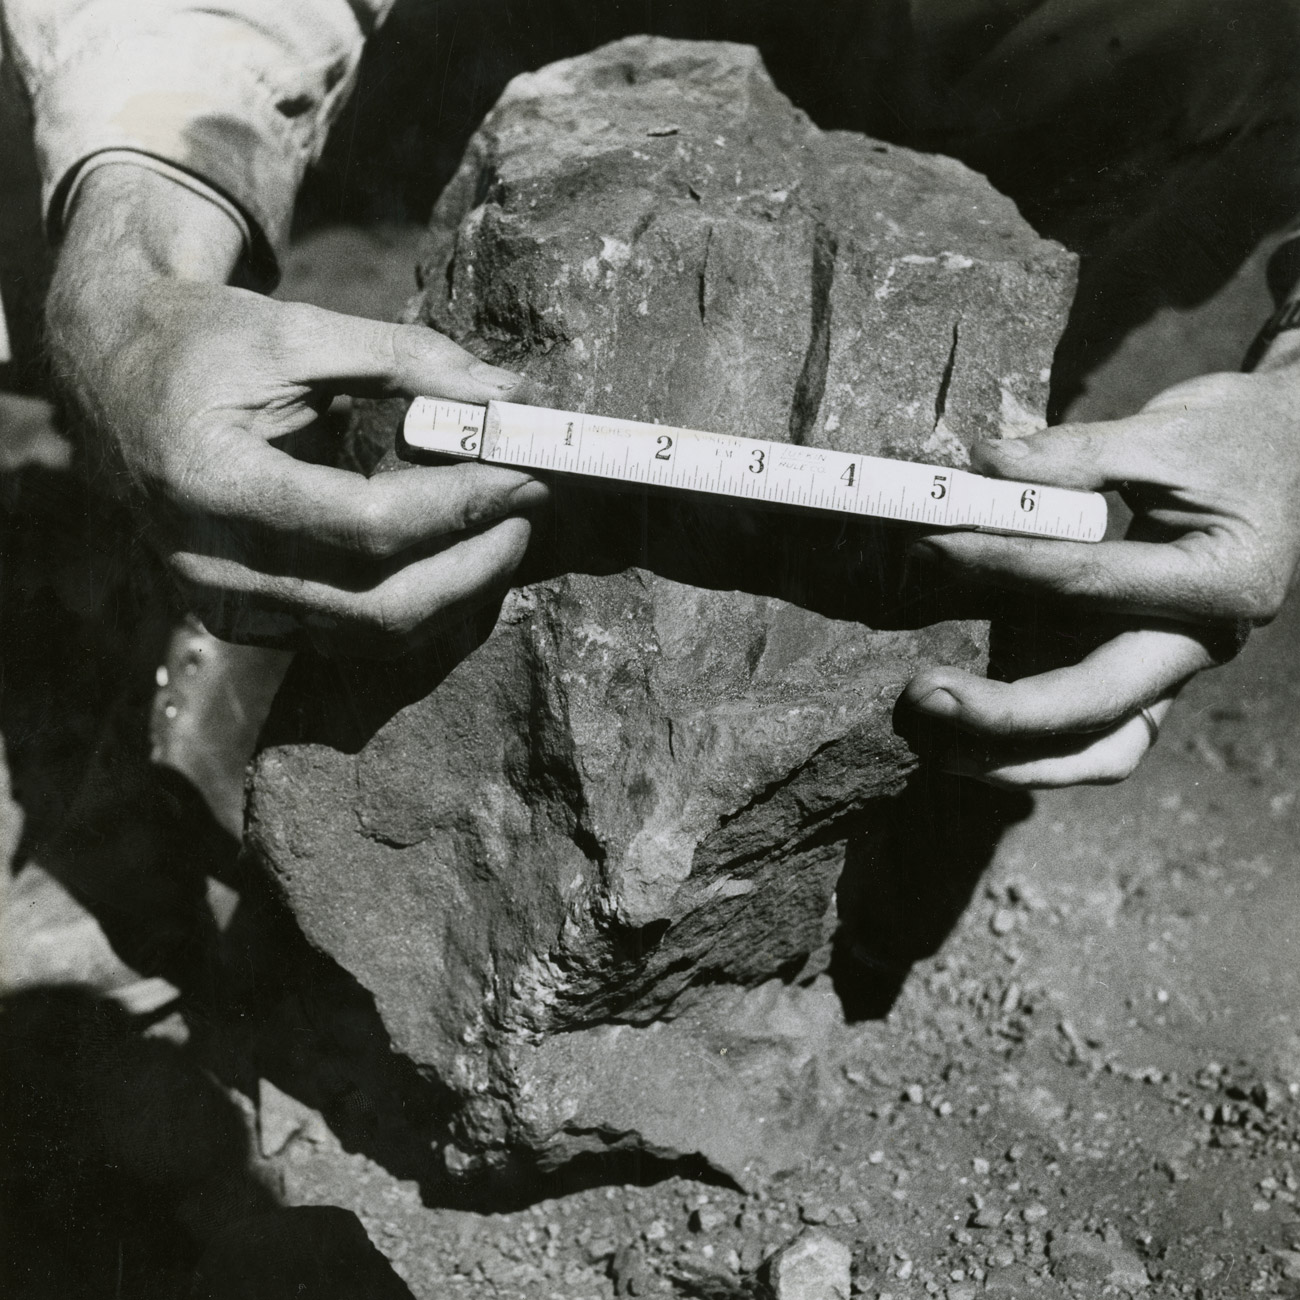 Iron Ore as provided by Mother Nature: This huge chunk of raw ore has yet to be crushed before being shipped from the mine for smelting. Press photograph by Hamilton Wright, 1951